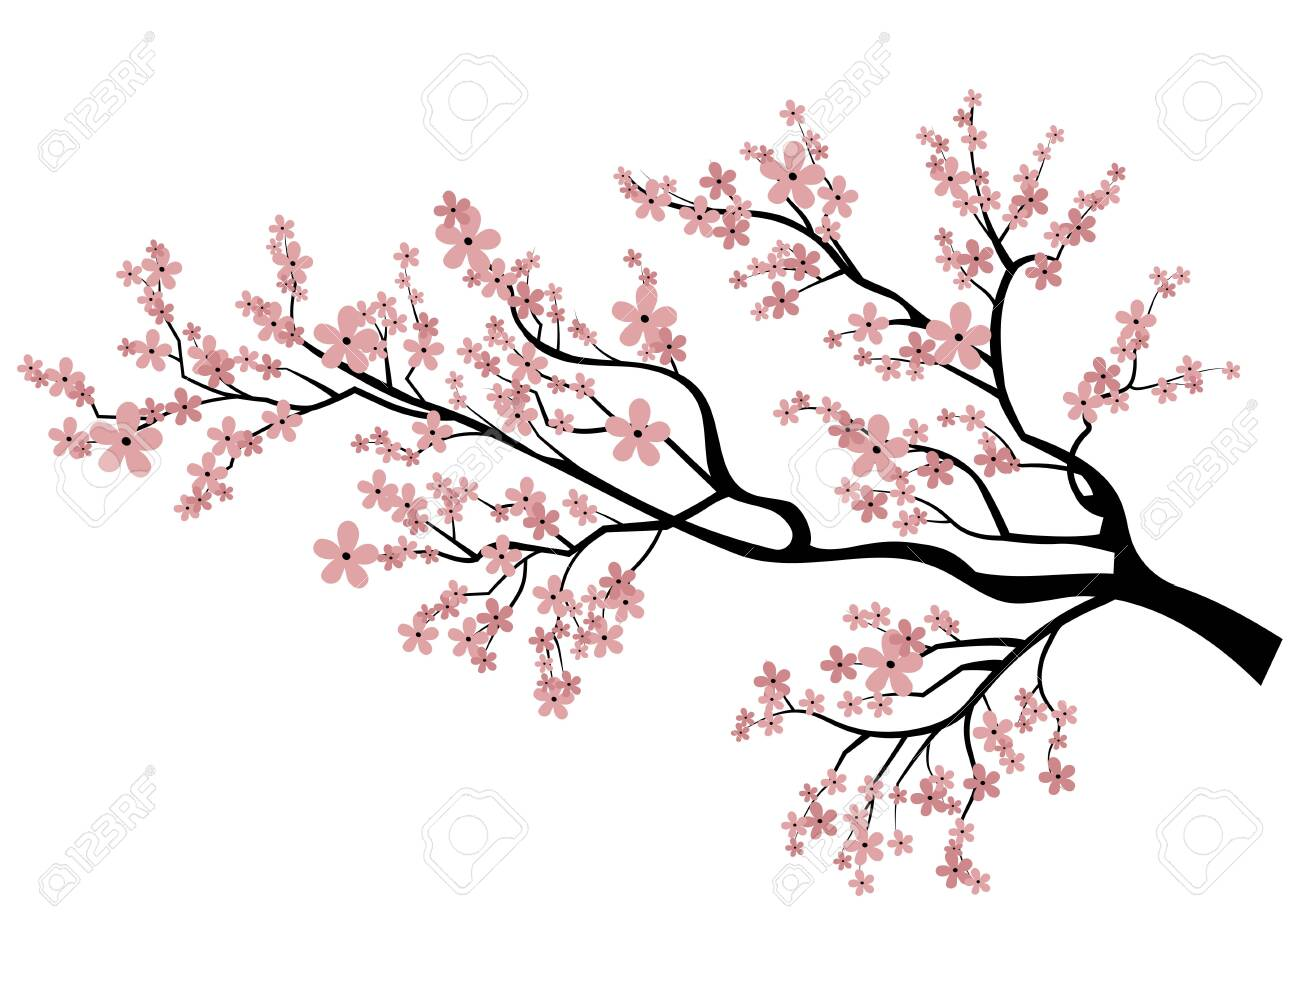 Blooming Cherry Sakura Branch With Flower Buds Cartoon Drawing Royalty Free Cliparts Vectors And Stock Illustration Image 130016870